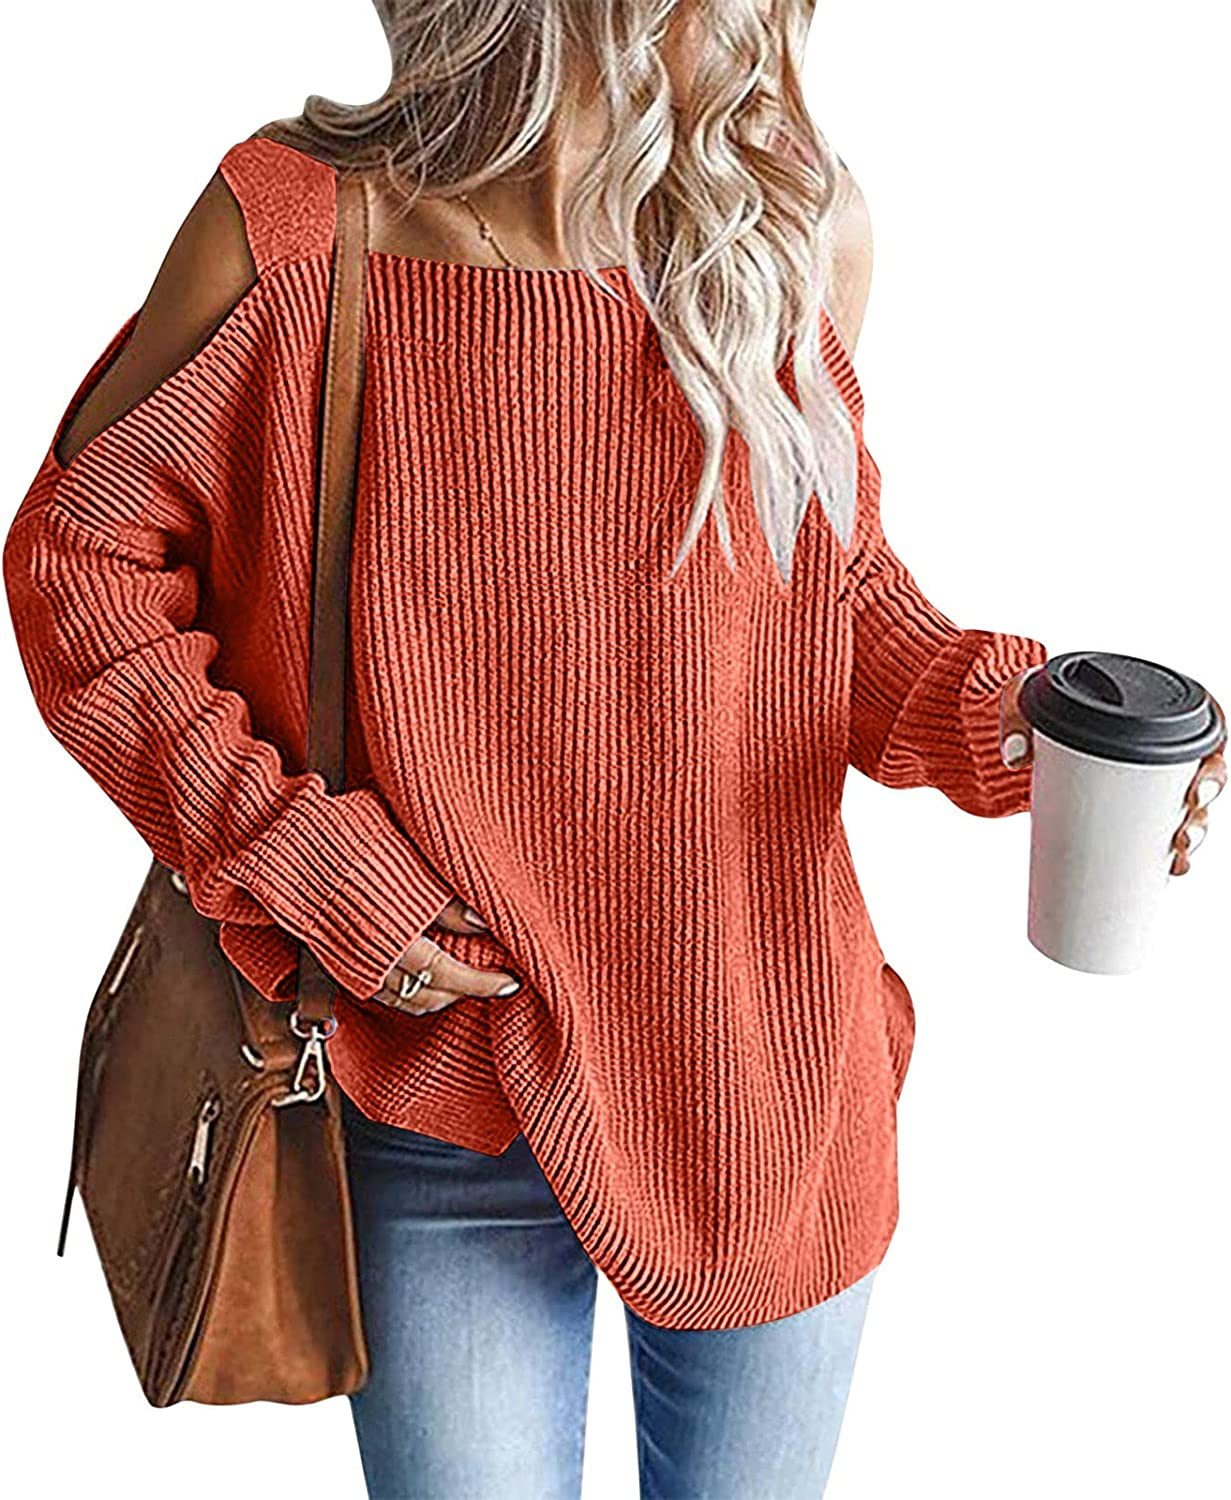 Women Off-Shoulder Sweater Bat-Sleeved Long-Sleeved Pullover Thick Knitted Winter Tunic Top